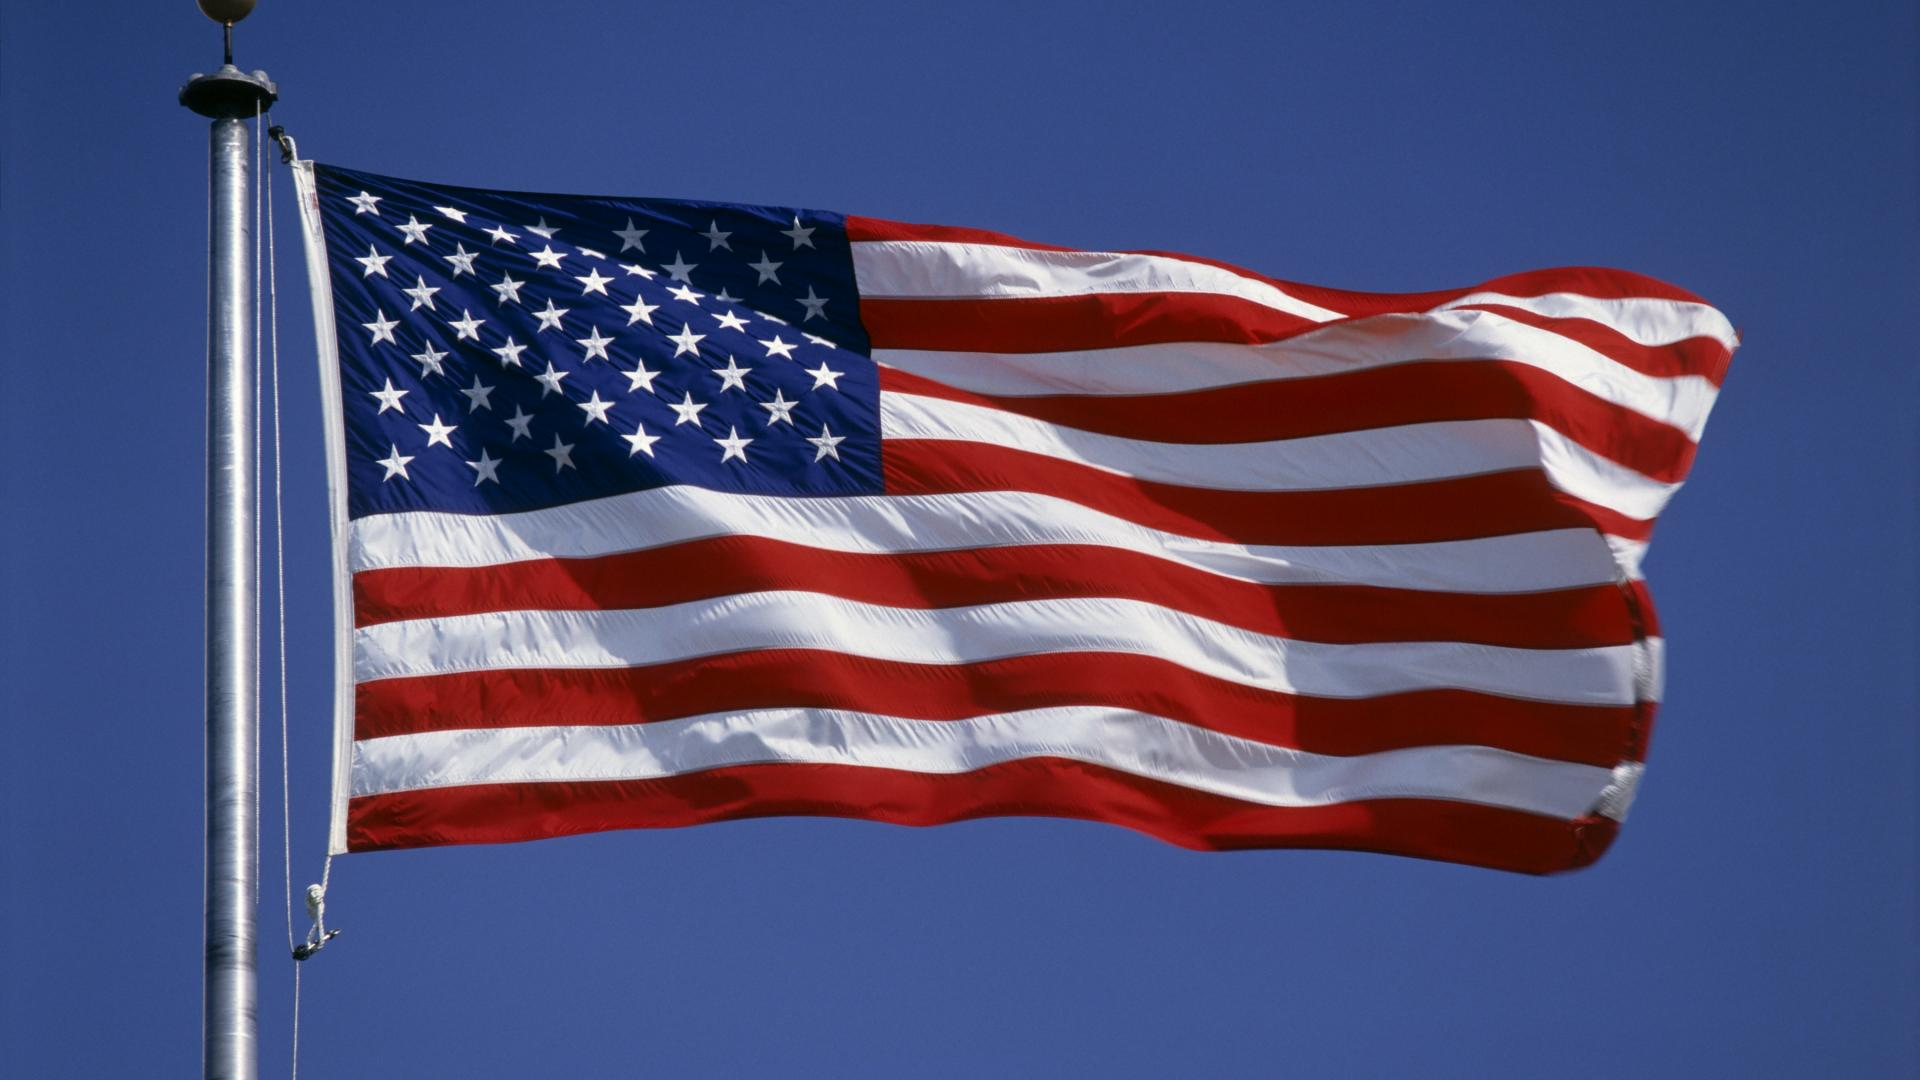 USA American Flag Desktop Wallpaper 1920x1080